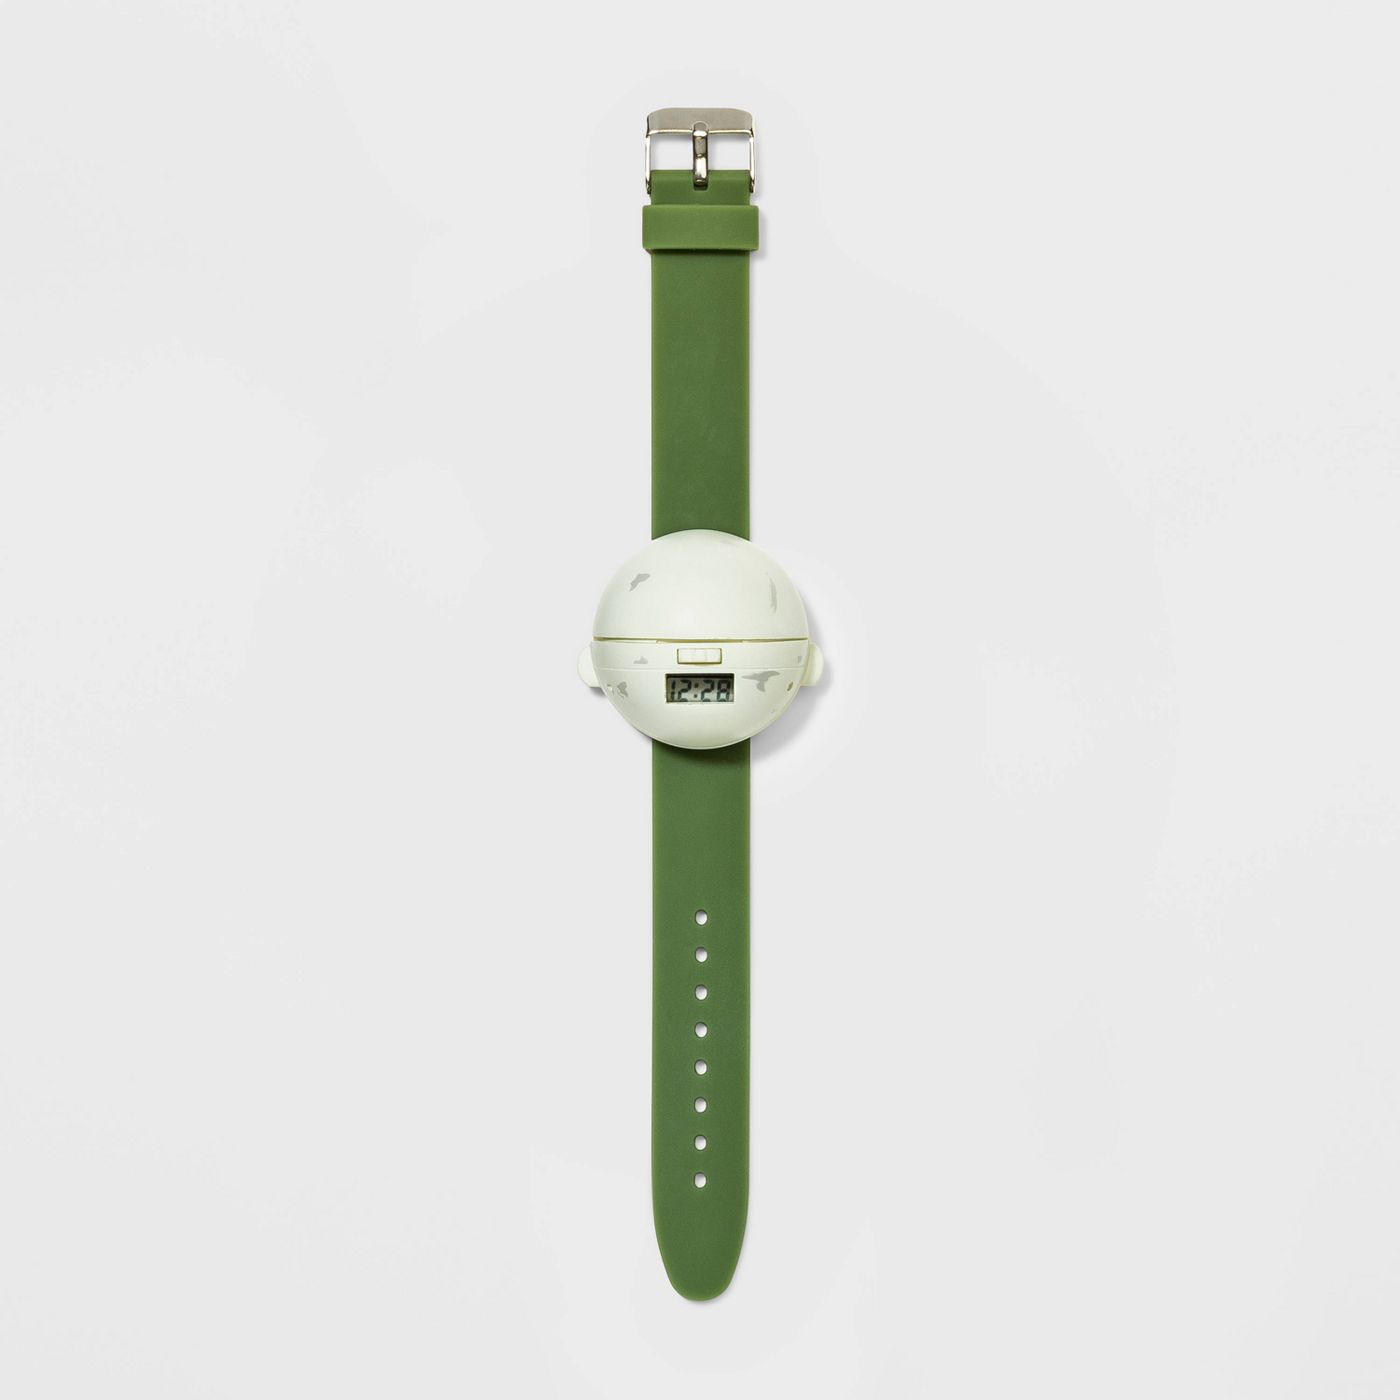 TM The Child (Grogu) Pop-Up Watch 4